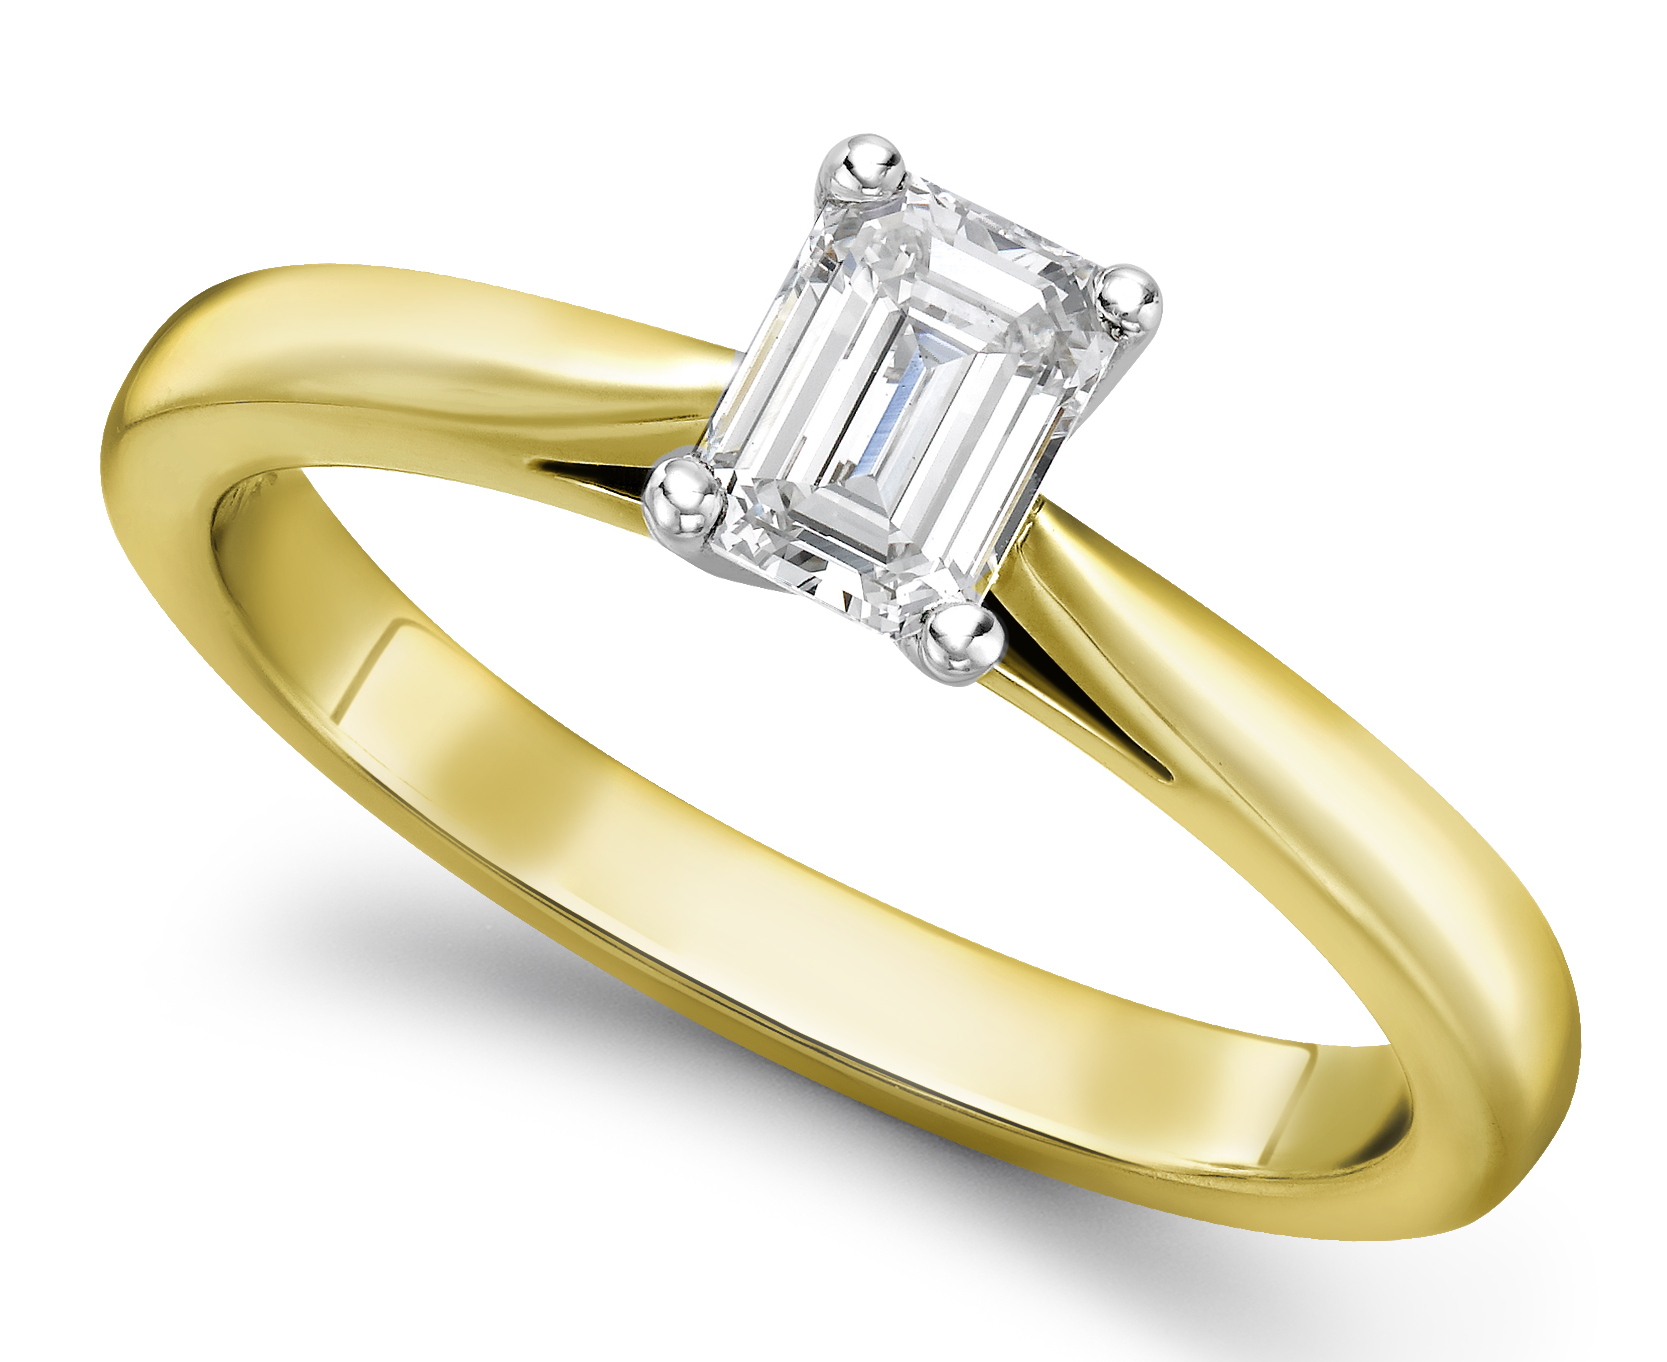 Emerald Cut Yellow Gold Diamond Engagement Ring GRC688YG Main Image